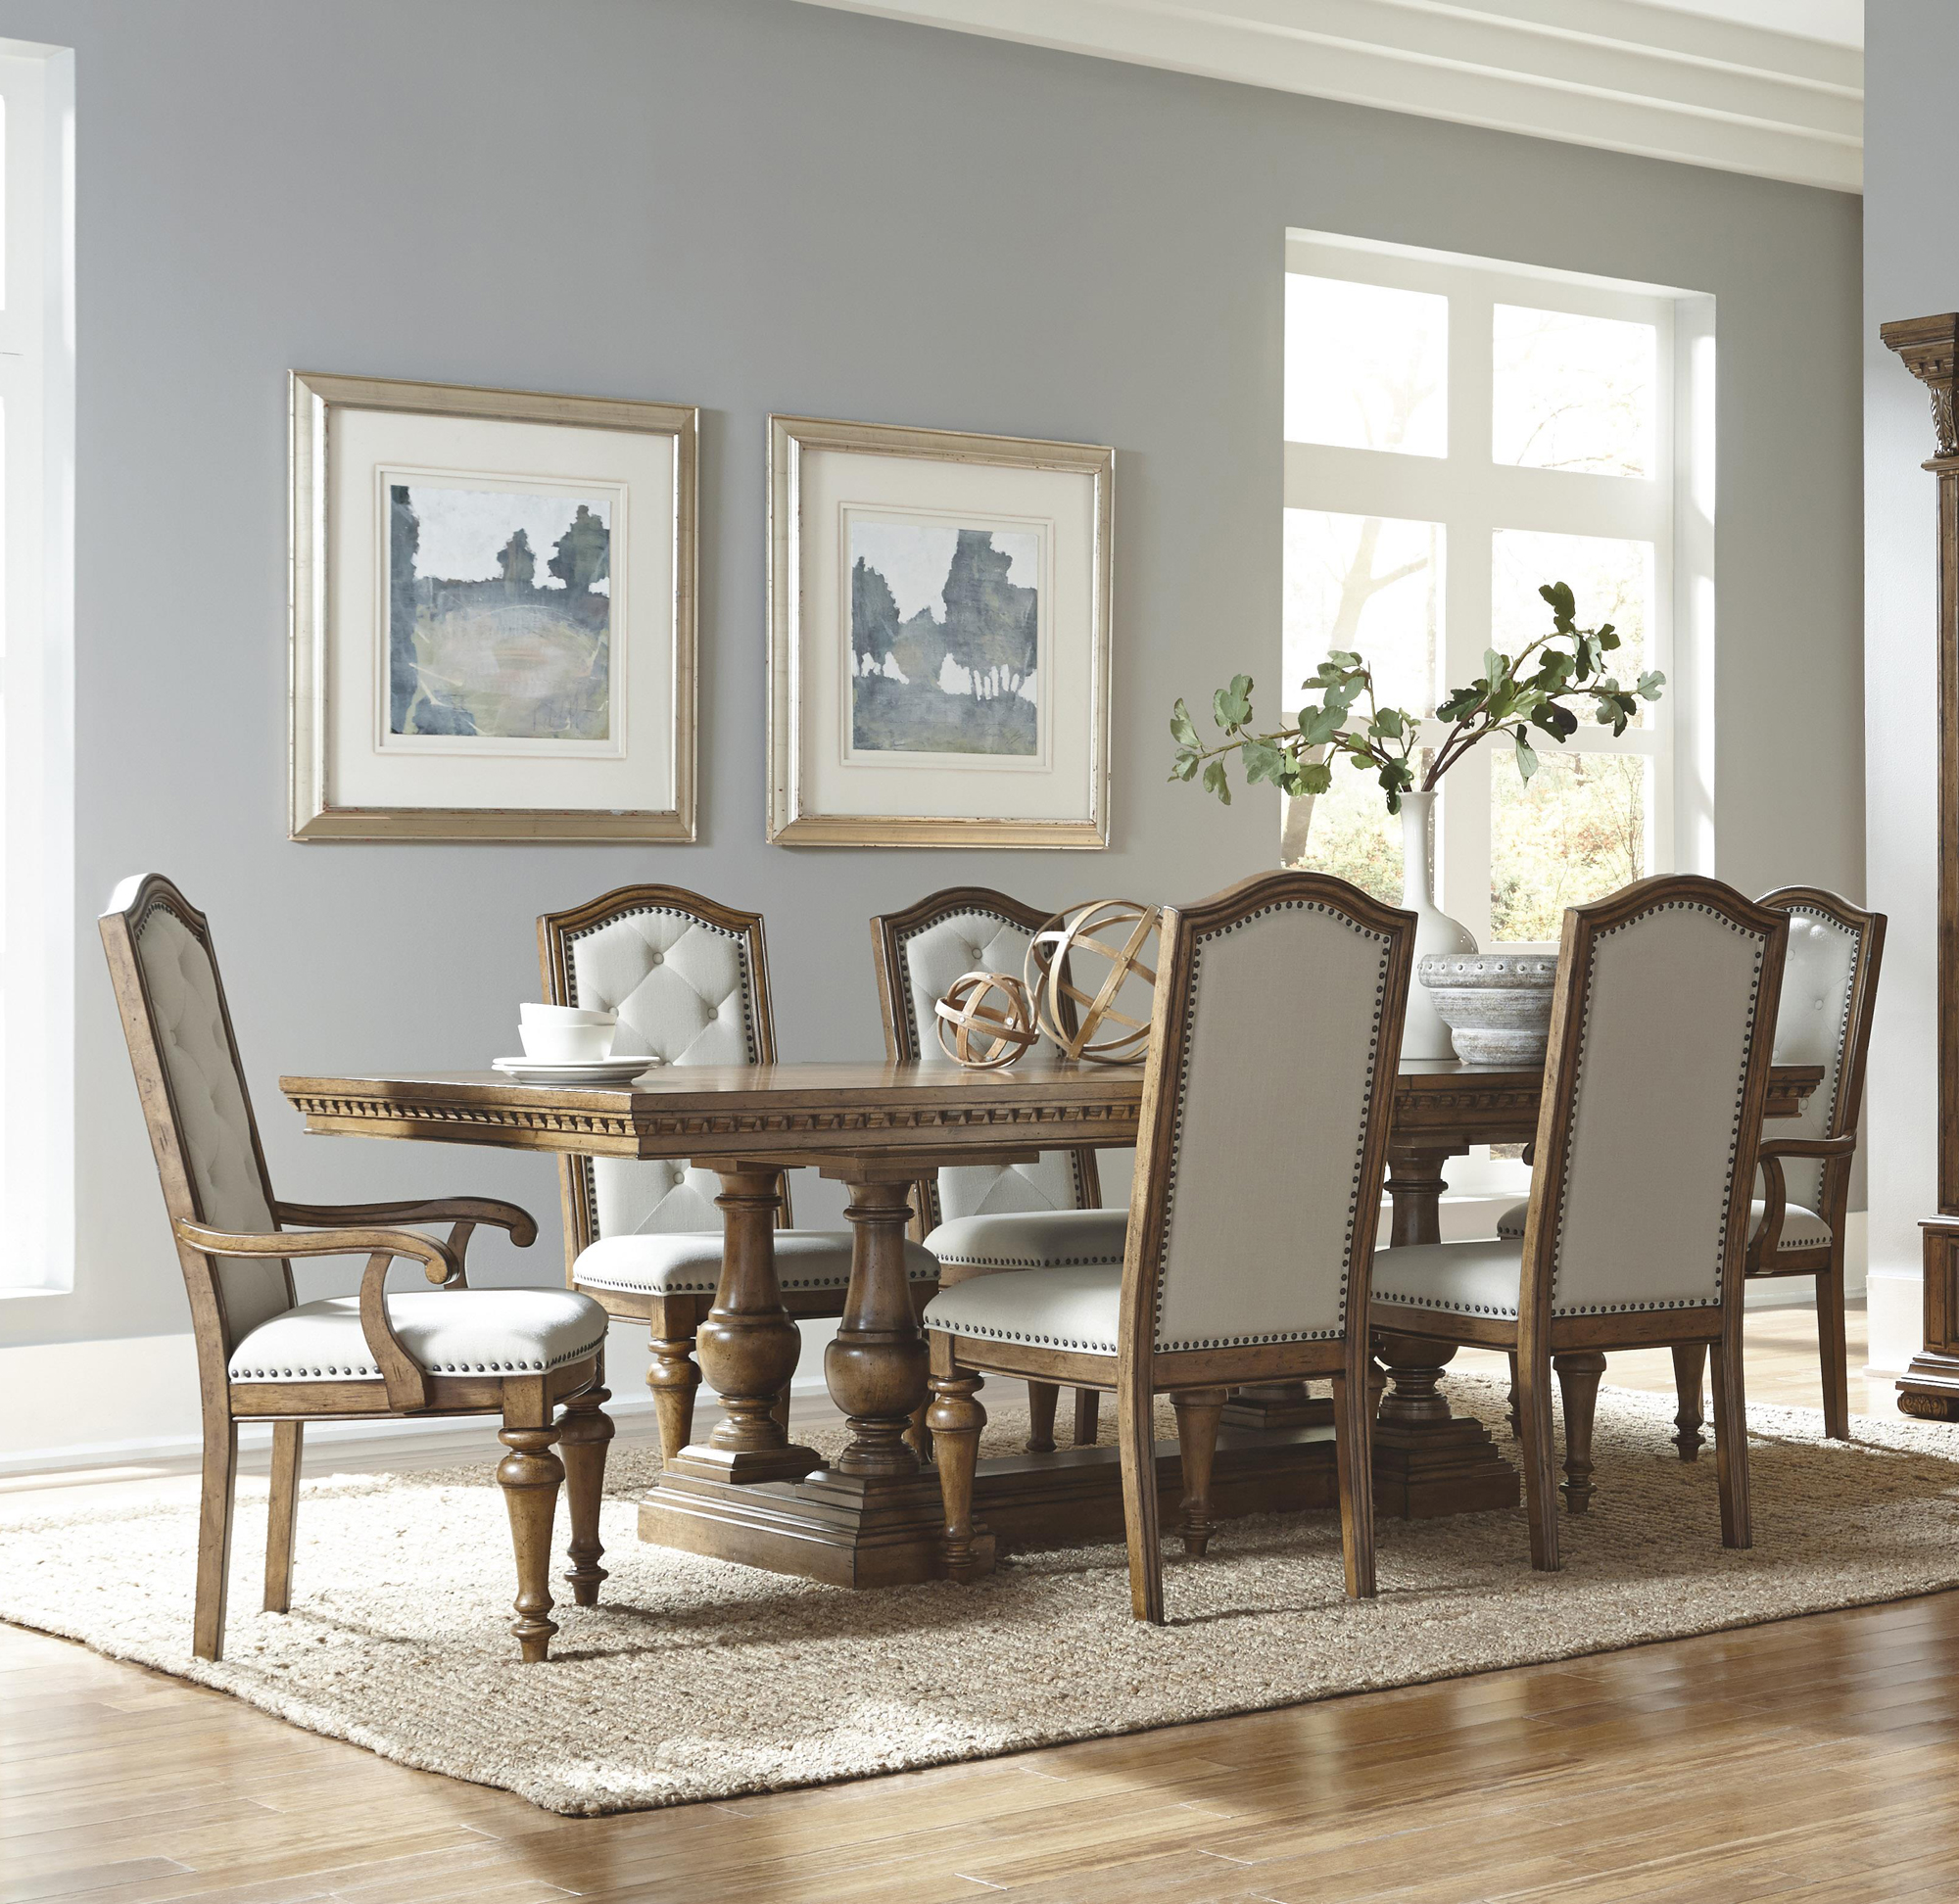 Charmant Stratton Rectangular Dining Room Table Set By Pulaski   Home Gallery Stores